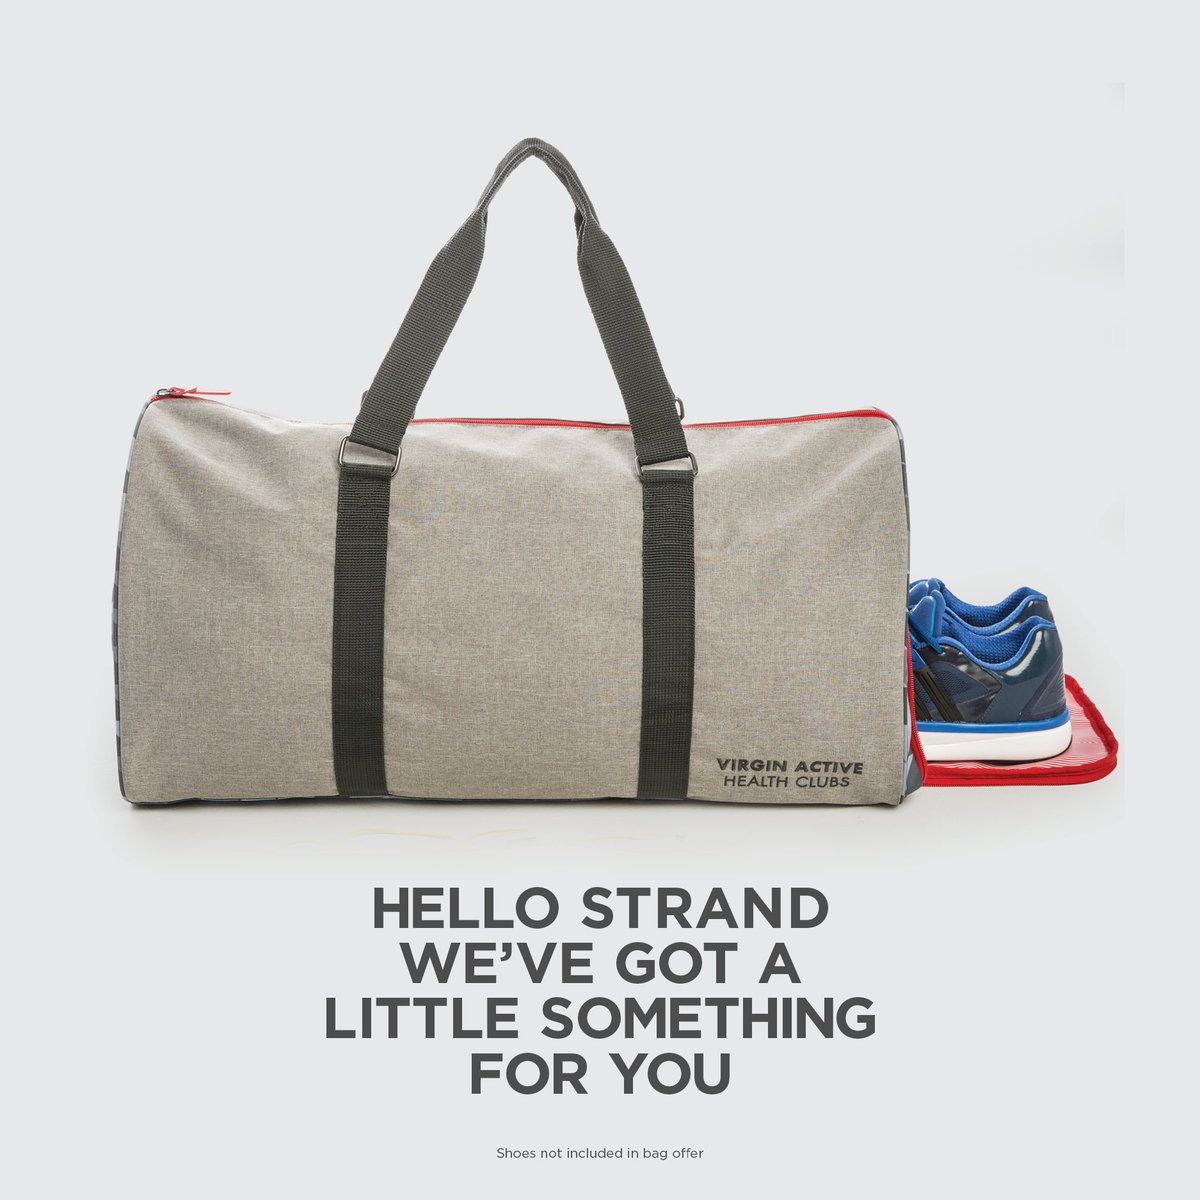 Virgin Active On Twitter Get A Designer Gym Bag With Our Awesome Pre Opening Offer Join New The Sanctuary